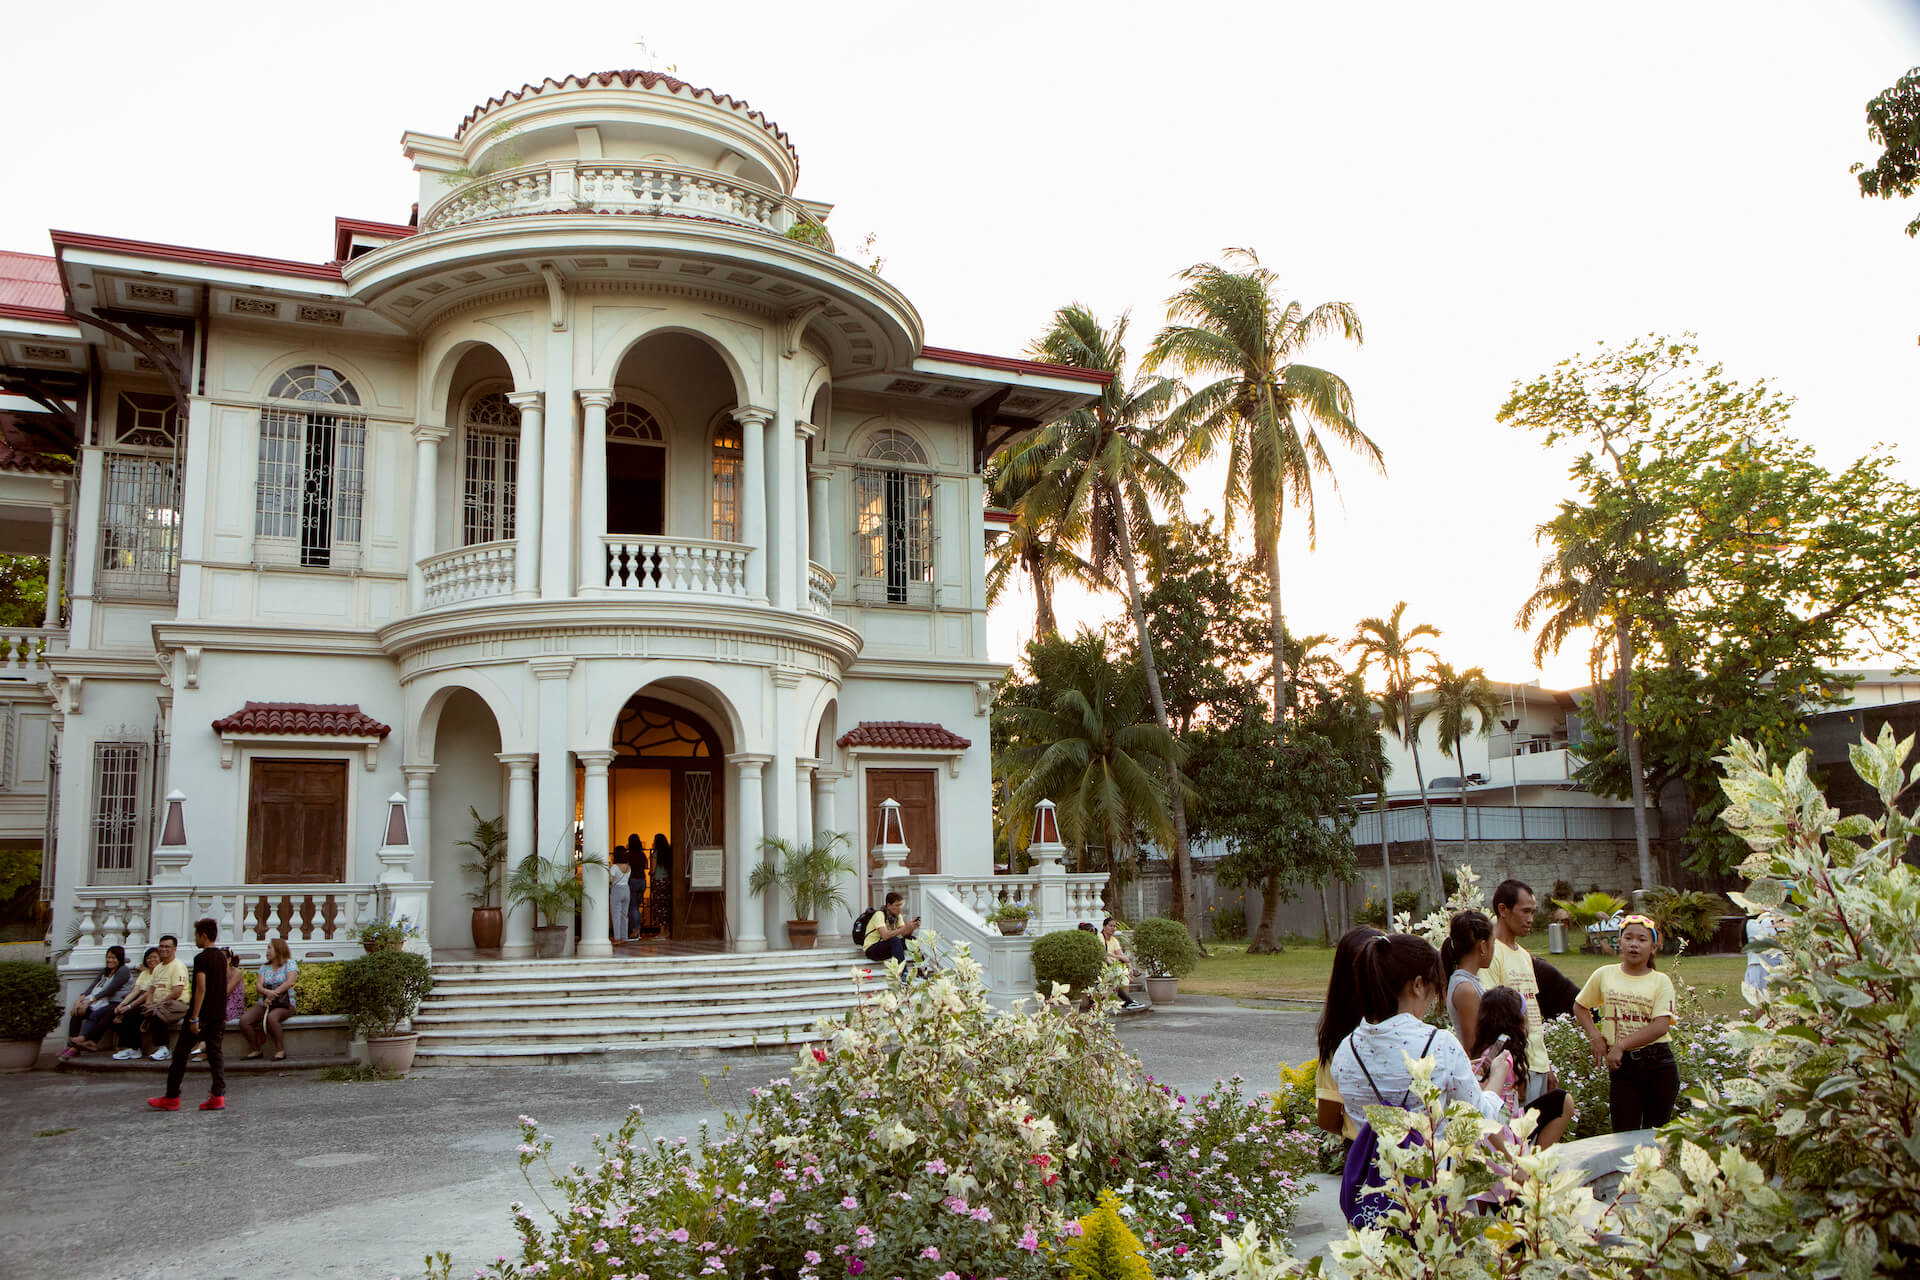 The Molo Mansion was the ancestral house of Lacson-Yusay family from Molo, photo by Miguel Nacianceno